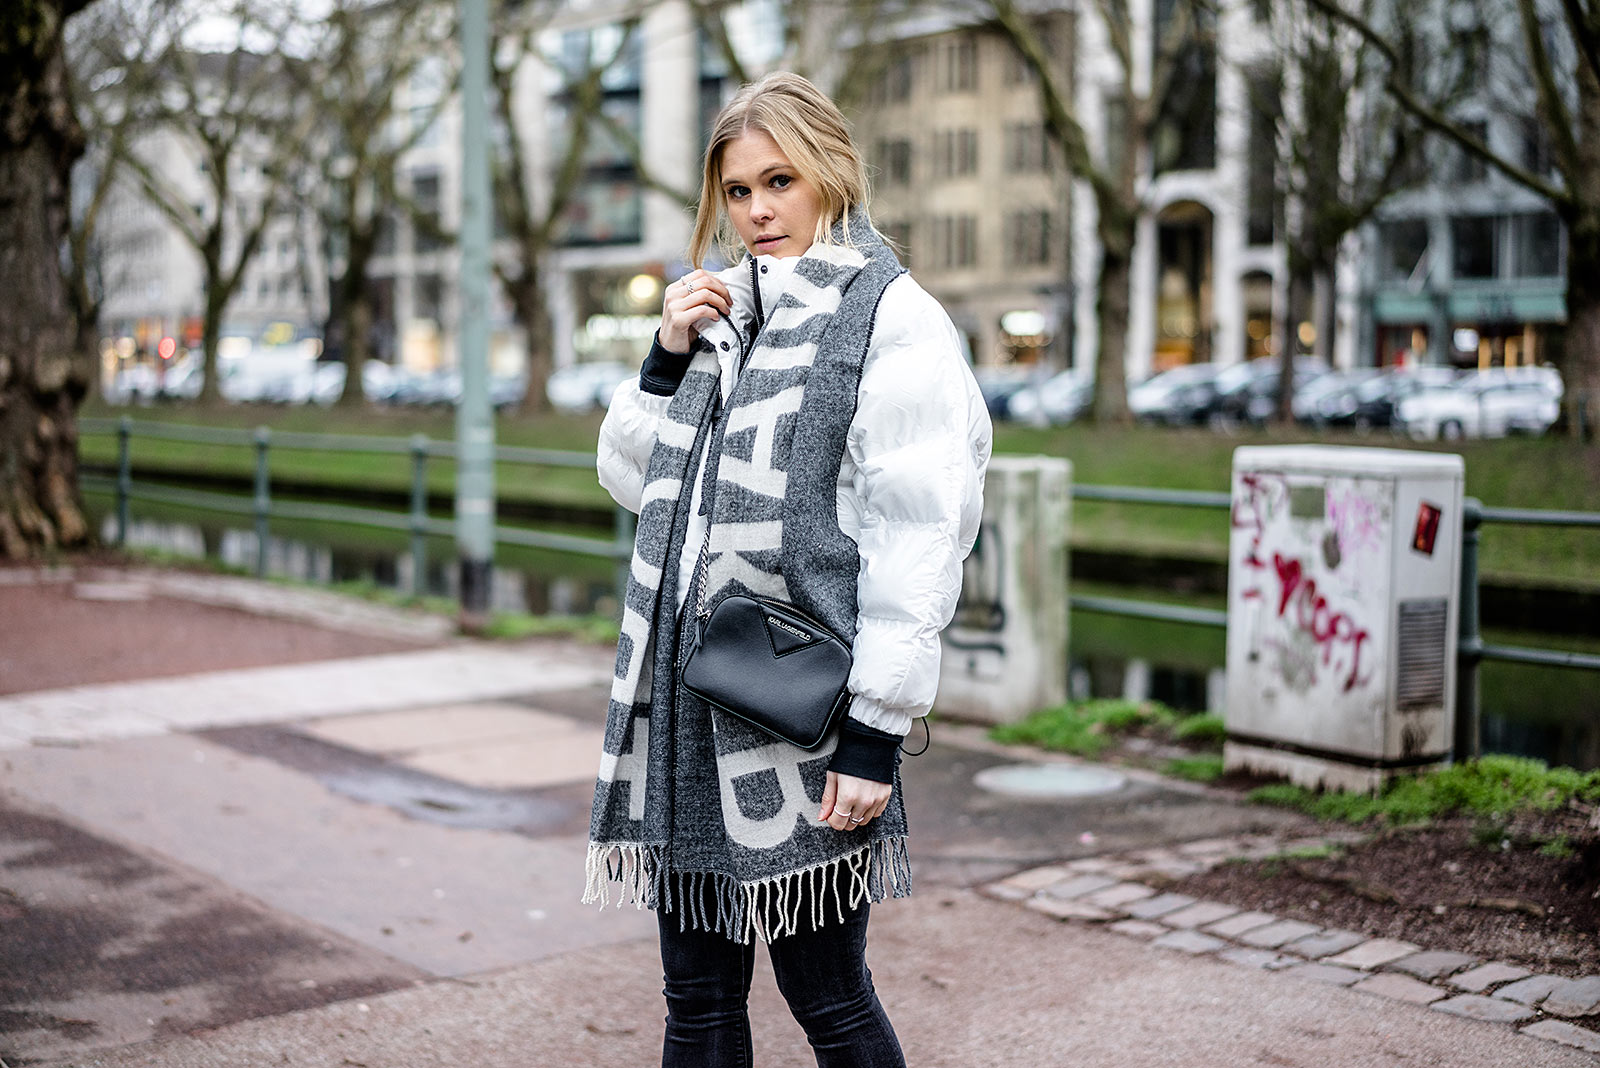 Statement Schal Outfit Daunenjacke weiss Streetstyle ootd Fashion Blogger Sunnyinga